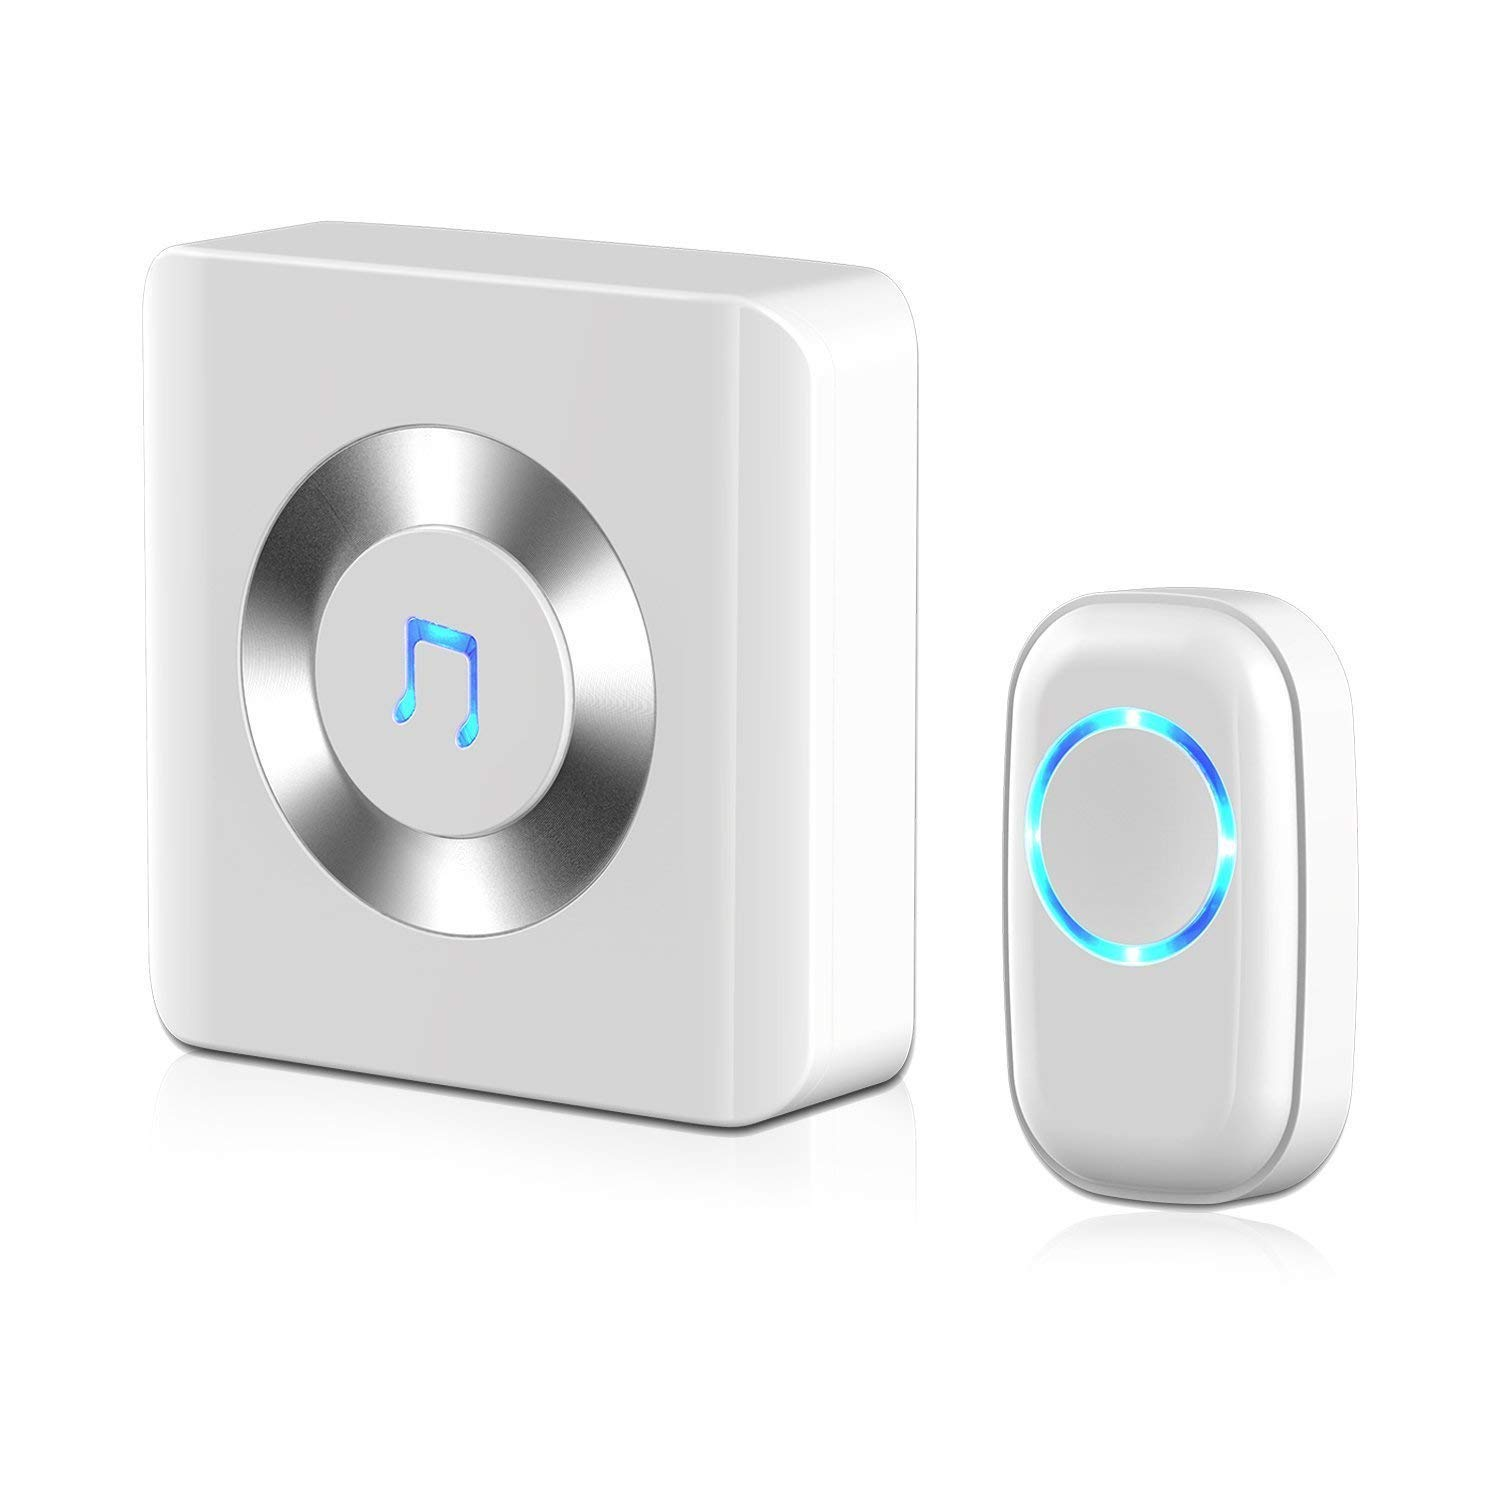 DLINMEI Wireless Remote Doorbell Alarm System Basic Starter Kit Includes 1 Plug-in Receiver And 1 Remote Button Transmitter White by DLINMEI (Image #1)